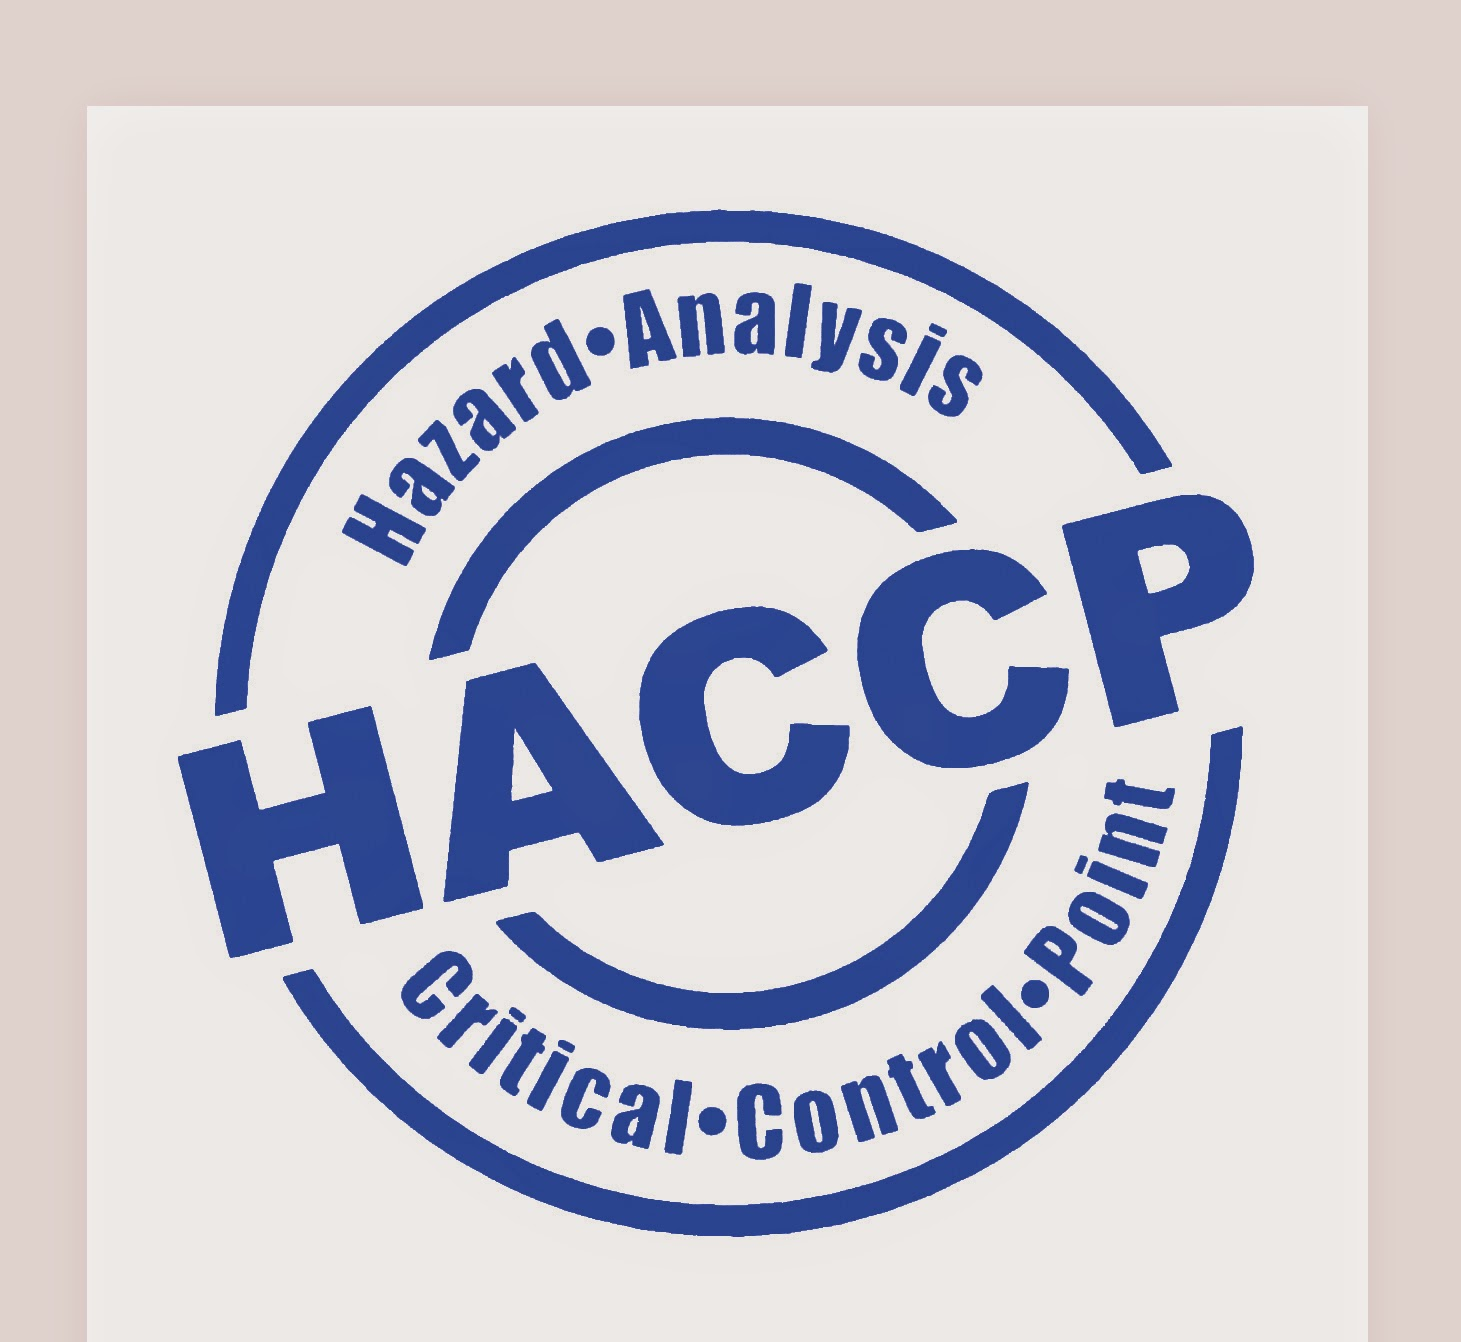 History of HACCP | Food Safety: ISO22000, HACCP Articles, News ...